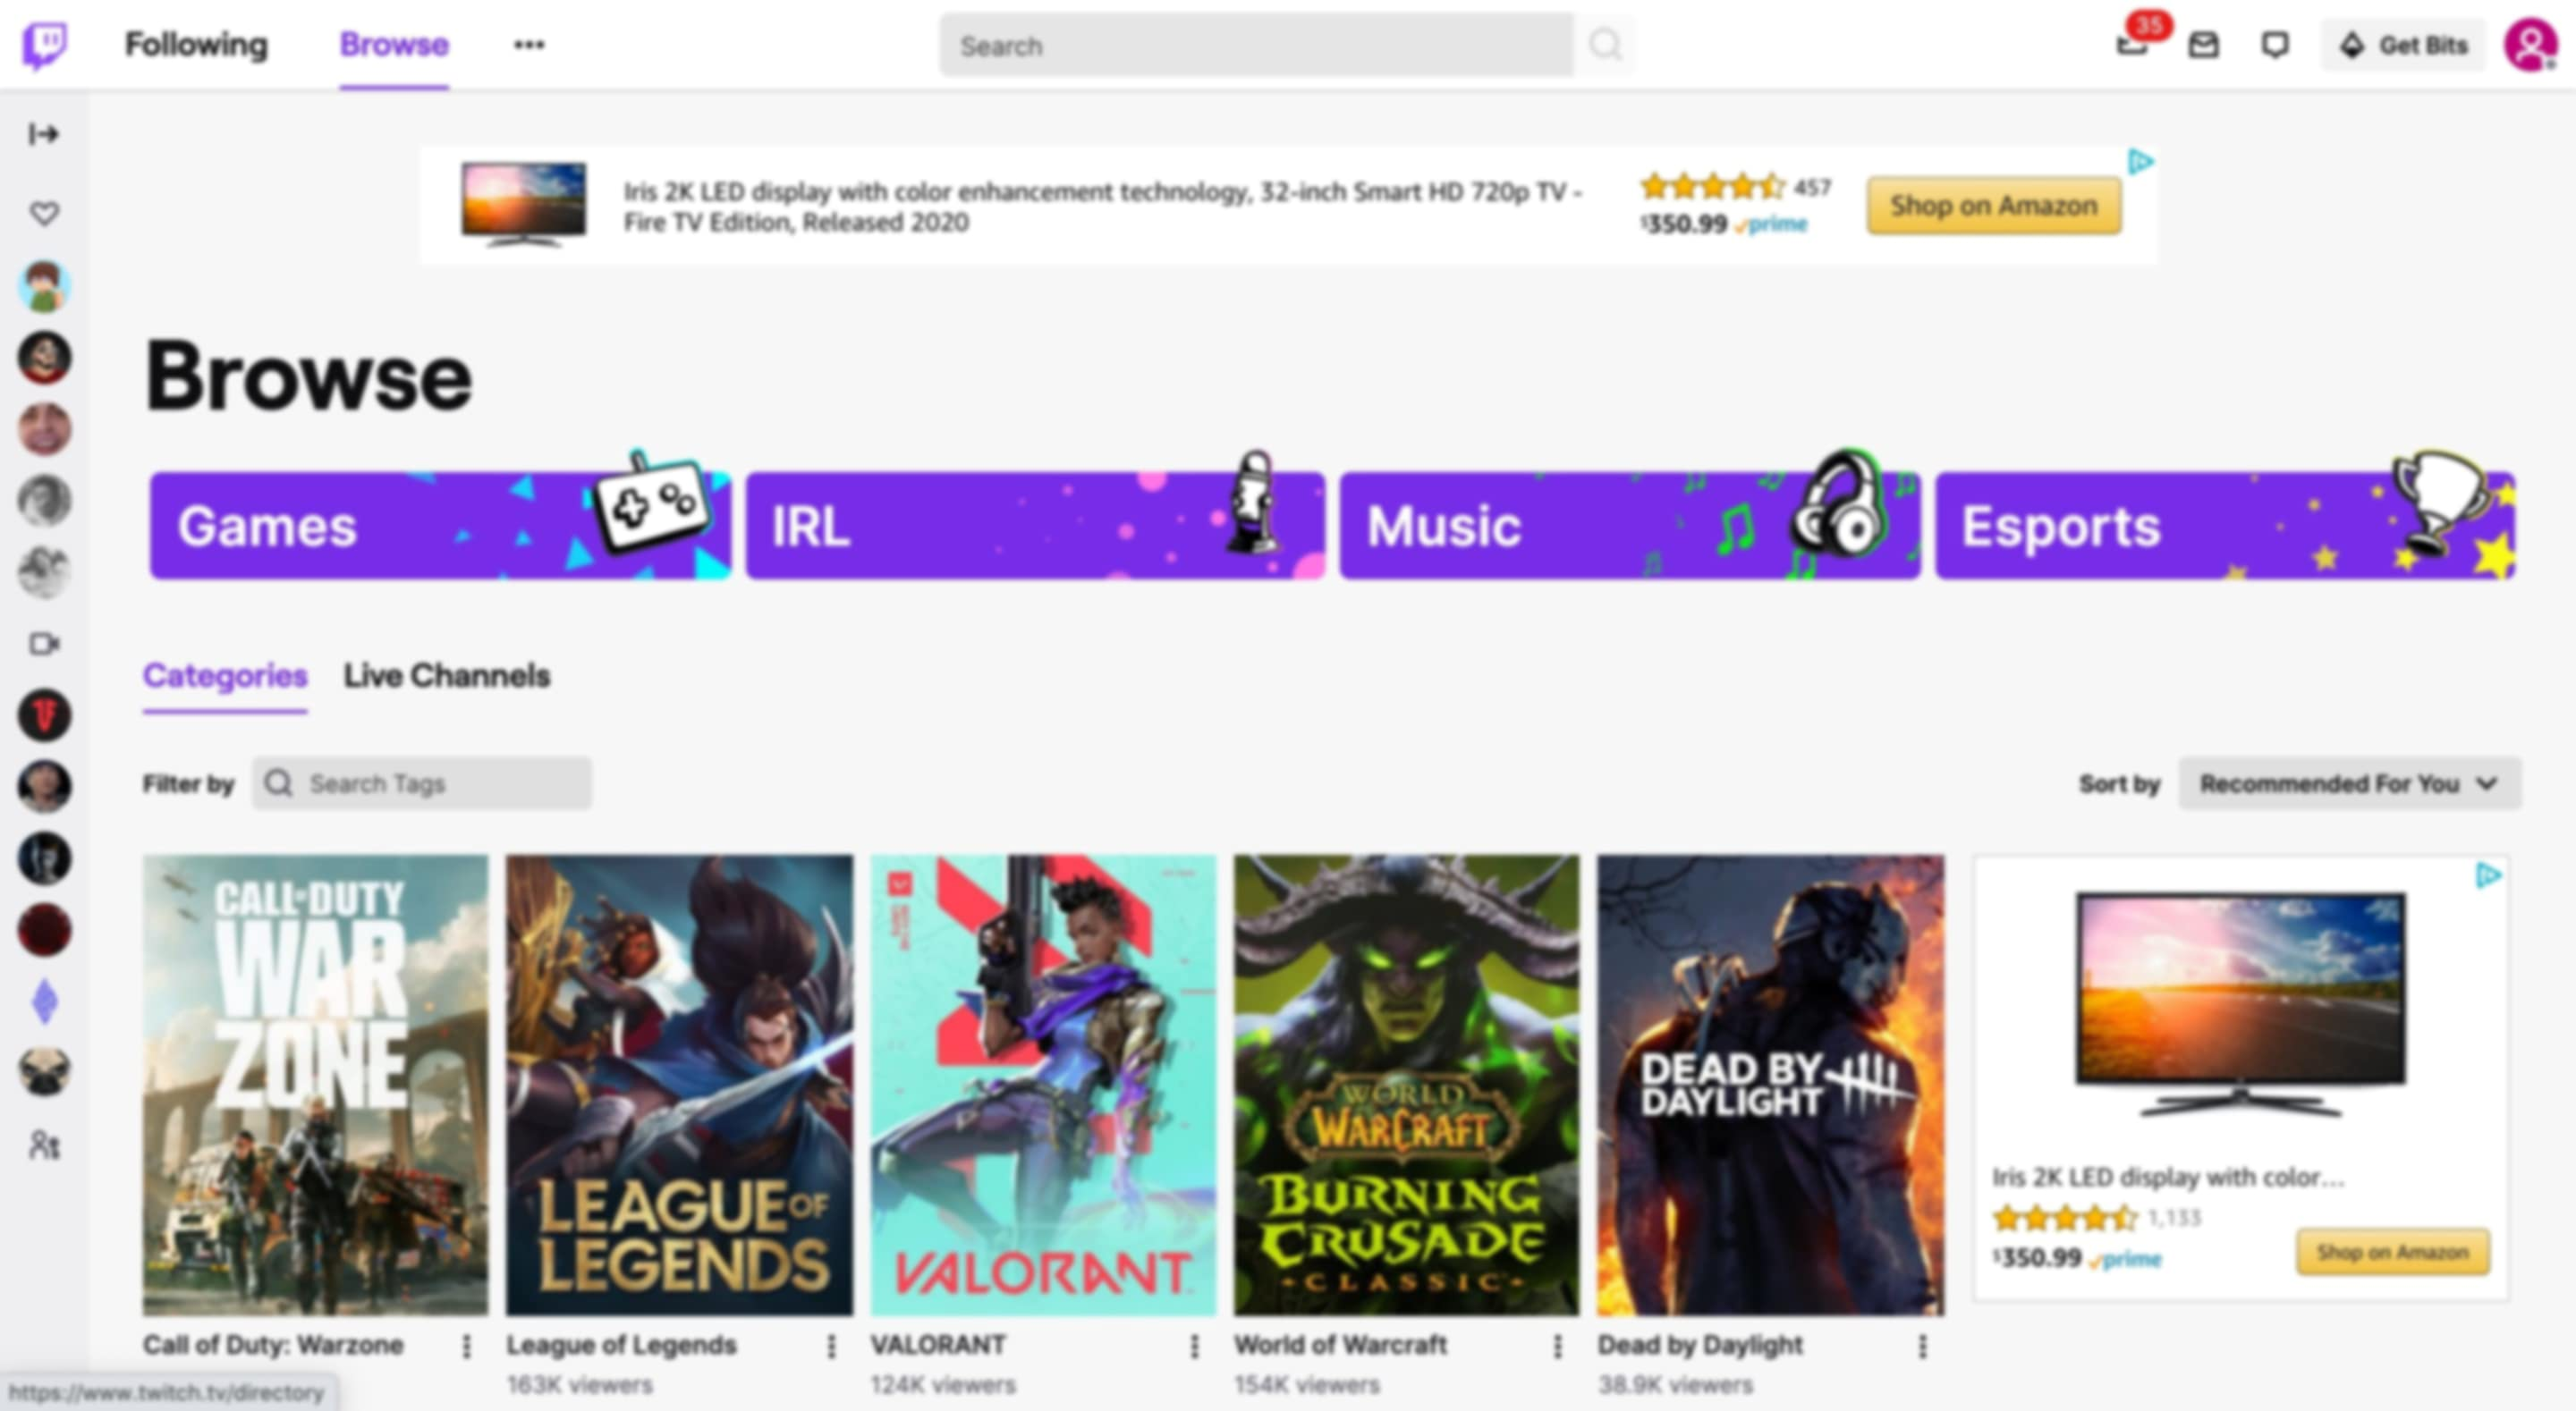 Browsing games, music, and other categories on Twitch.